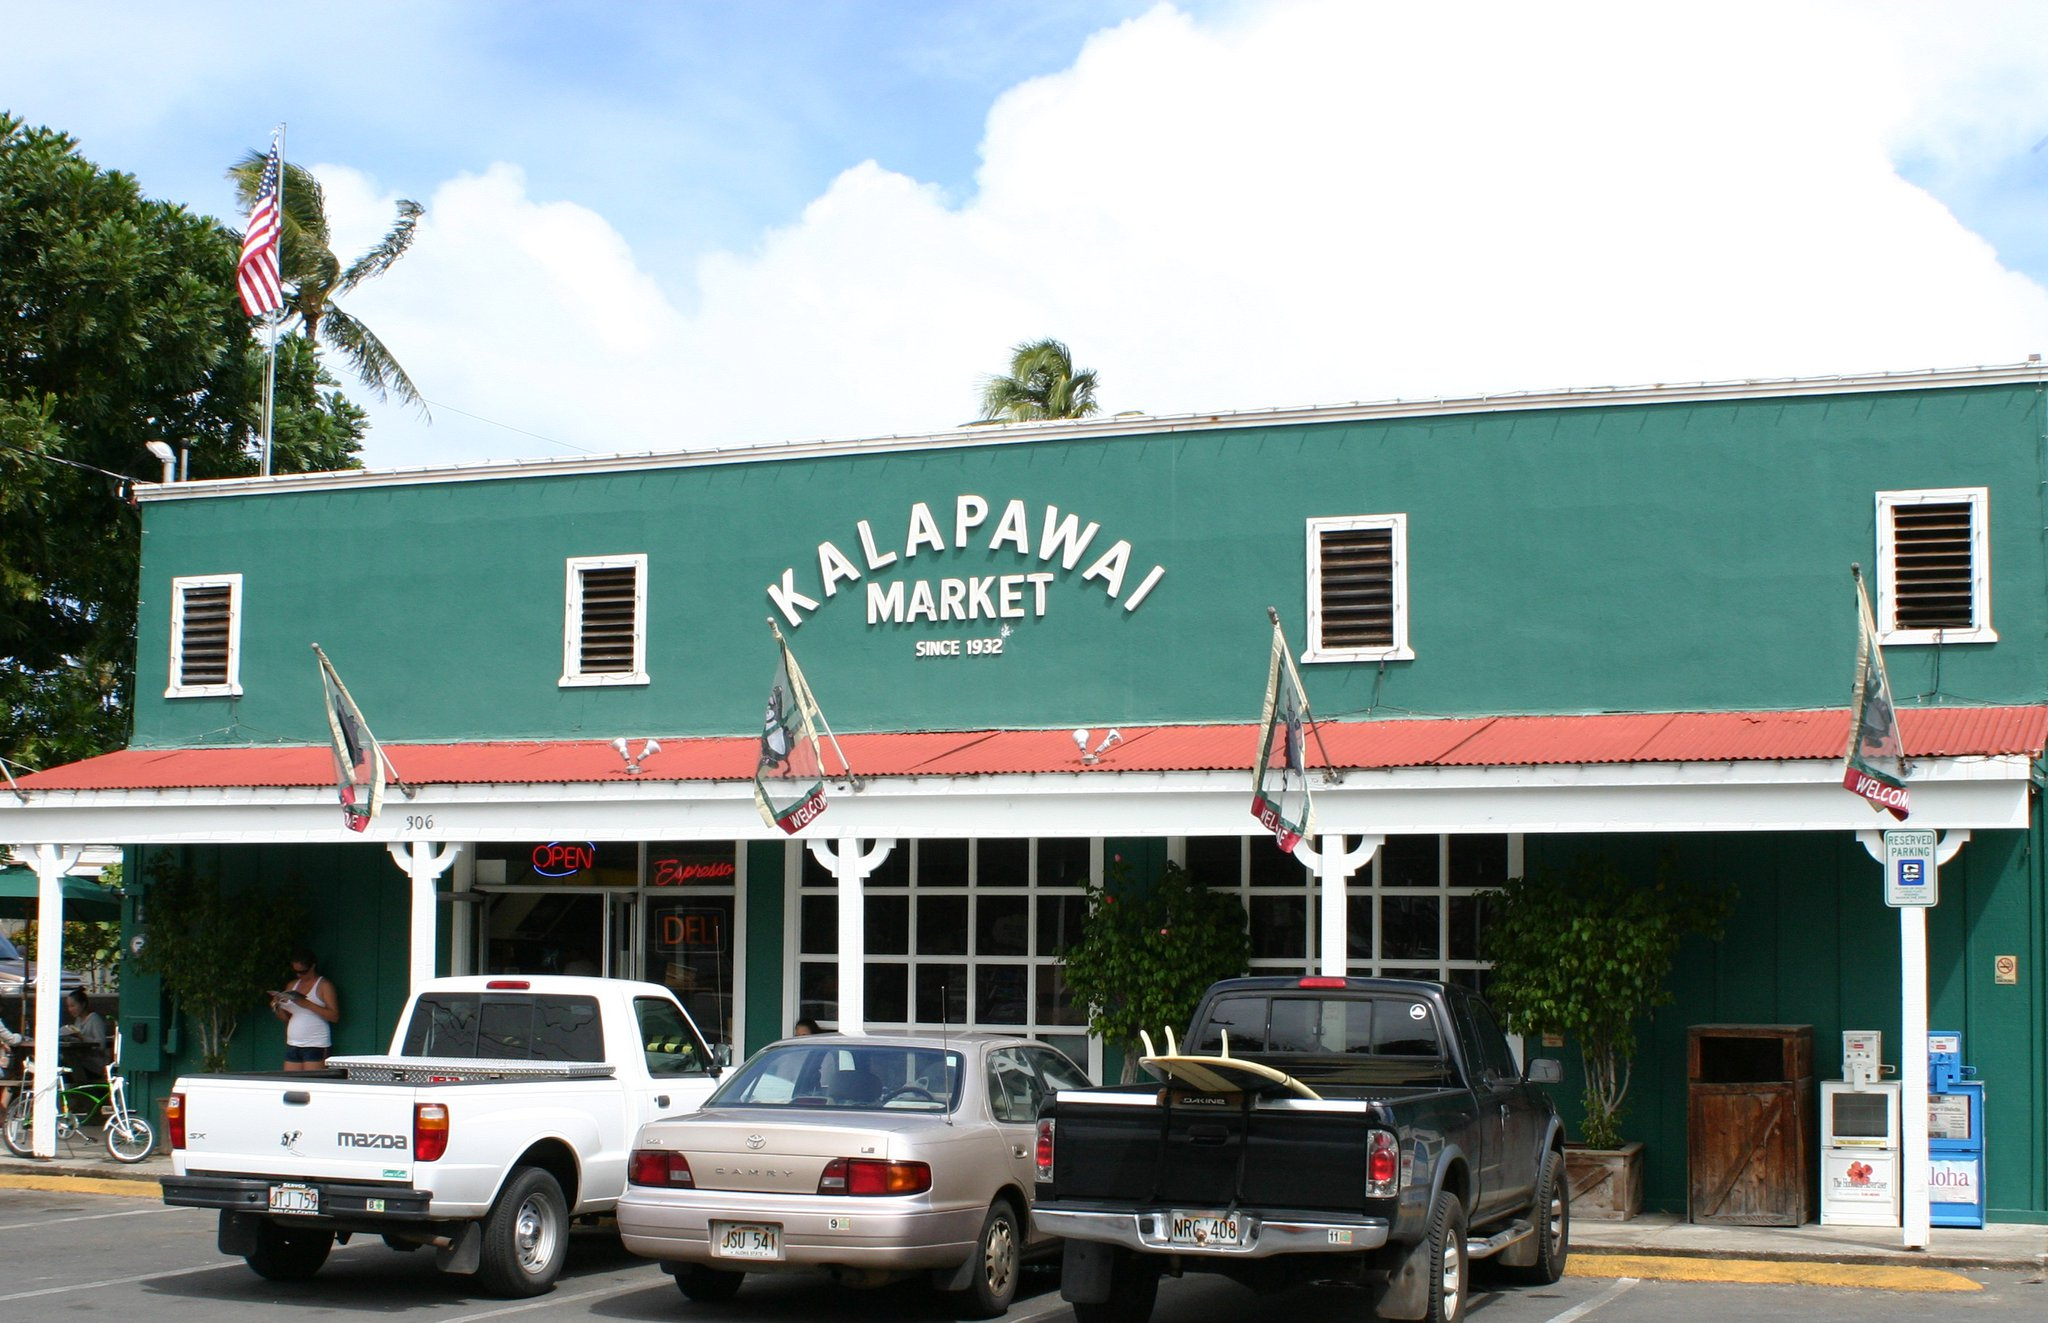 Oahu health & nutrition stores